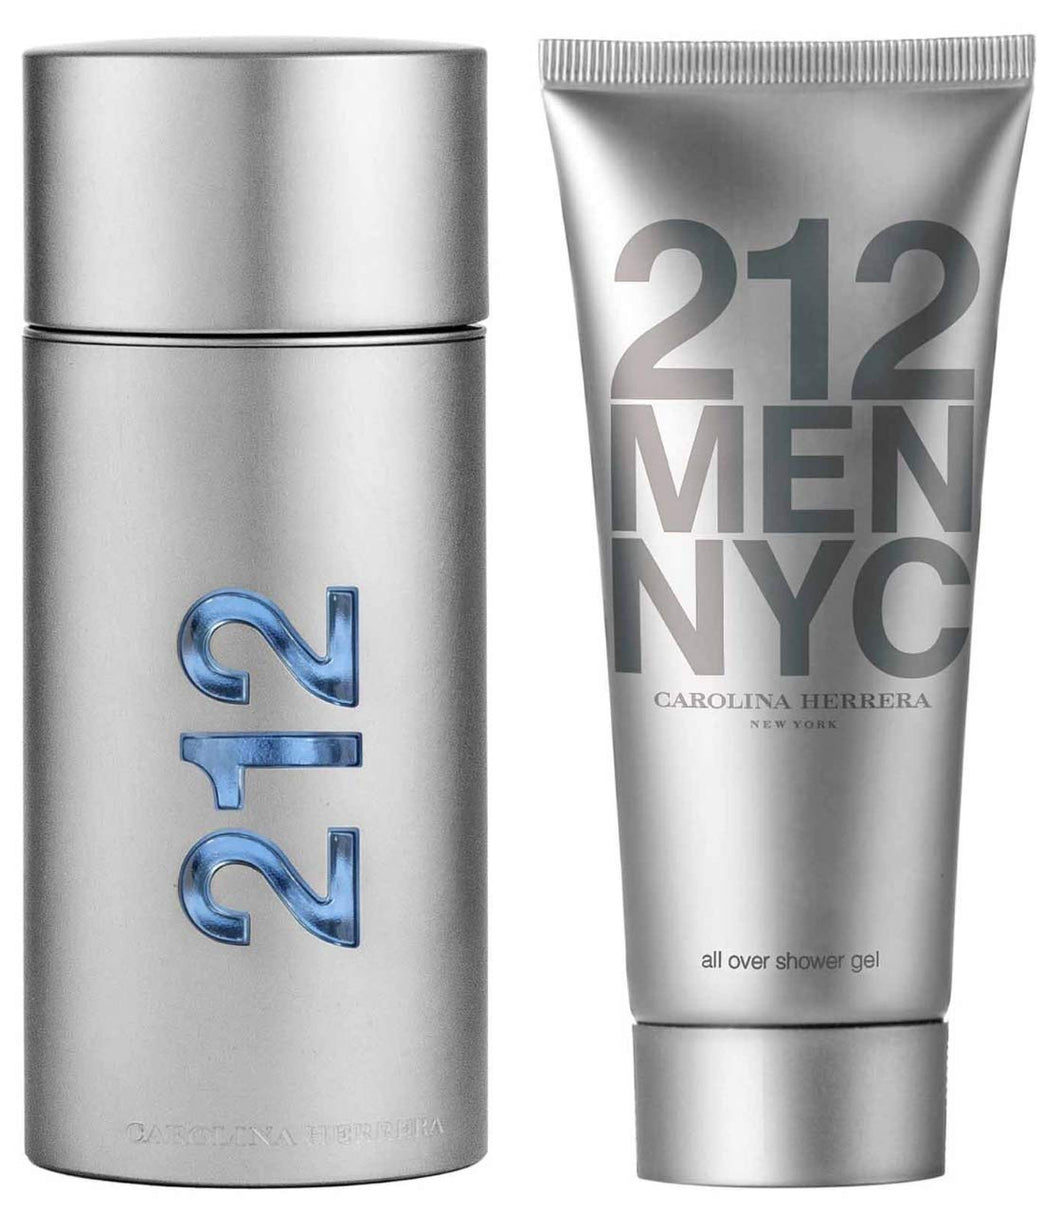 Carolina Herrera 212 Men NYC Eau de Toilette Gift Set for Men